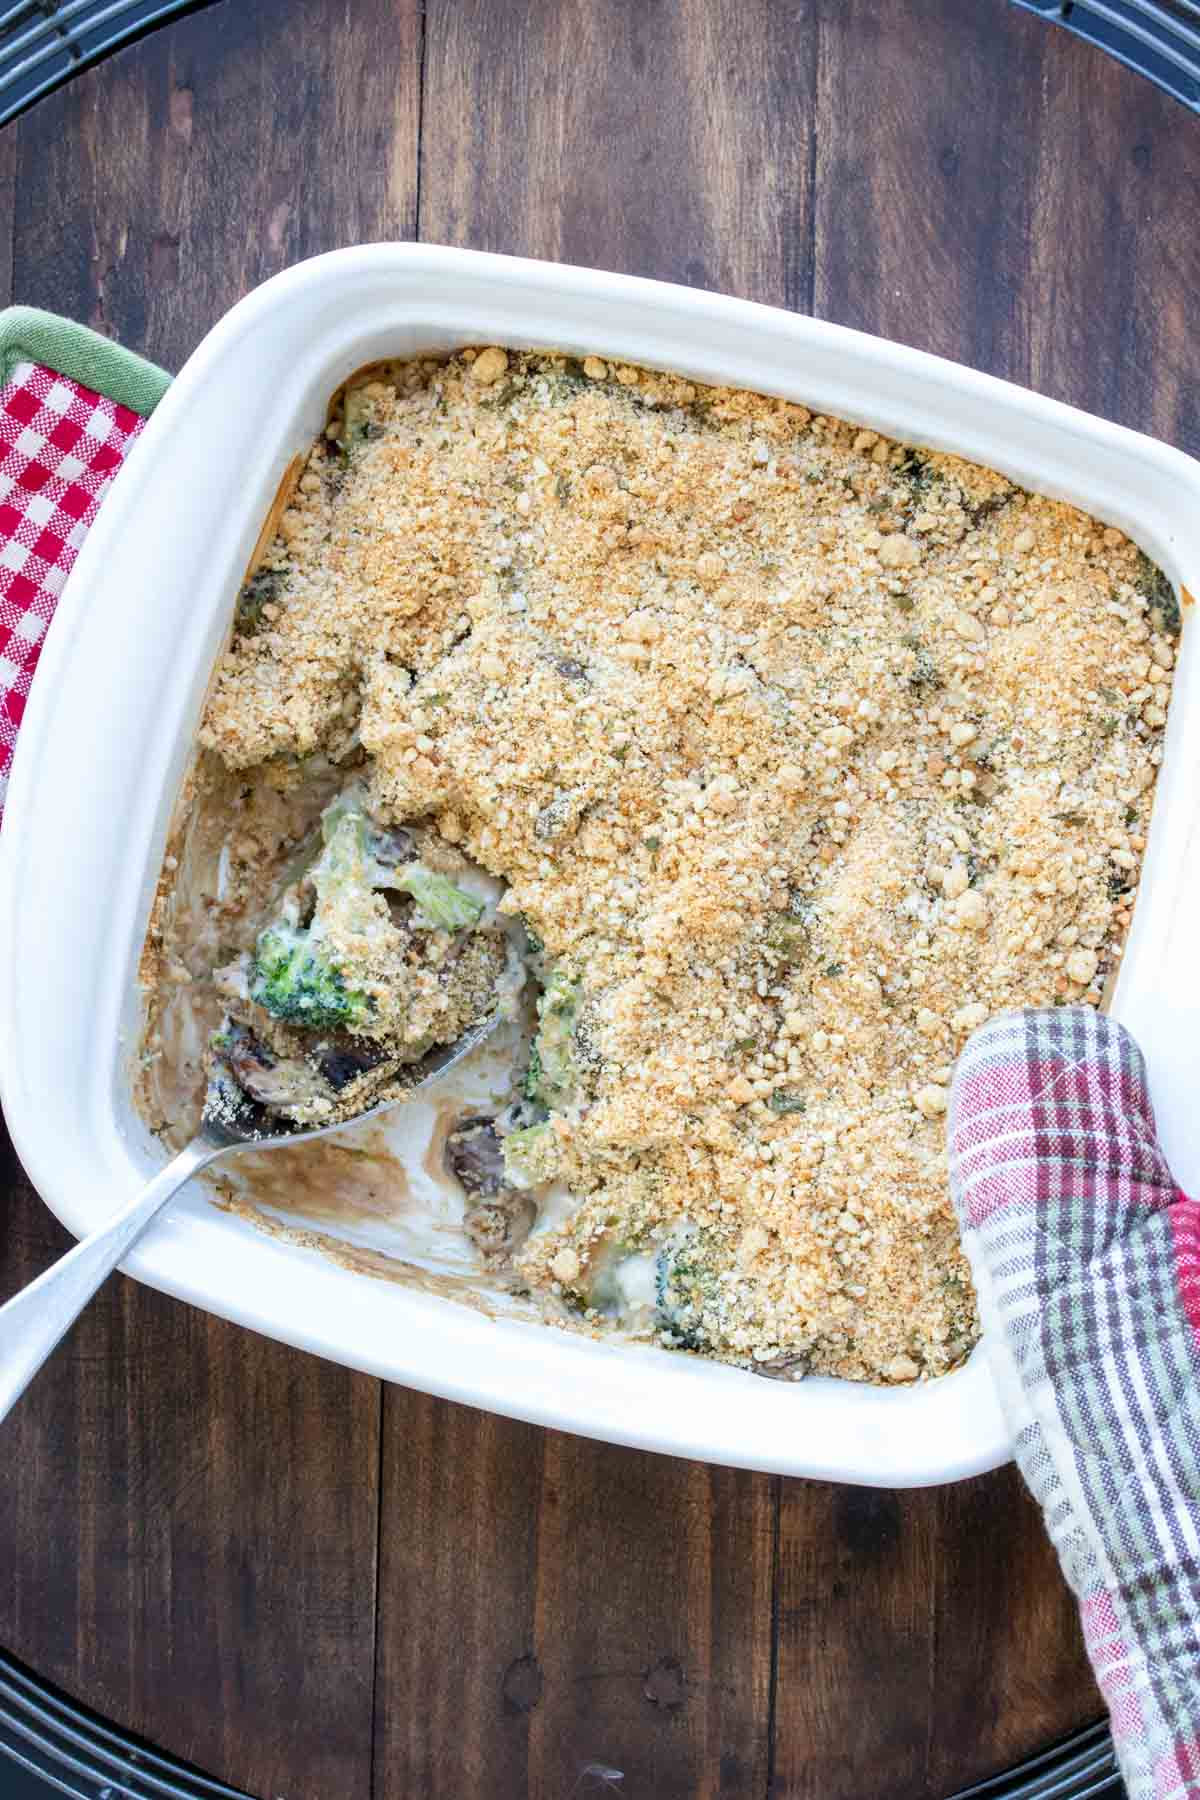 Oven mitt holding a white casserole dish with baked broccoli casserole